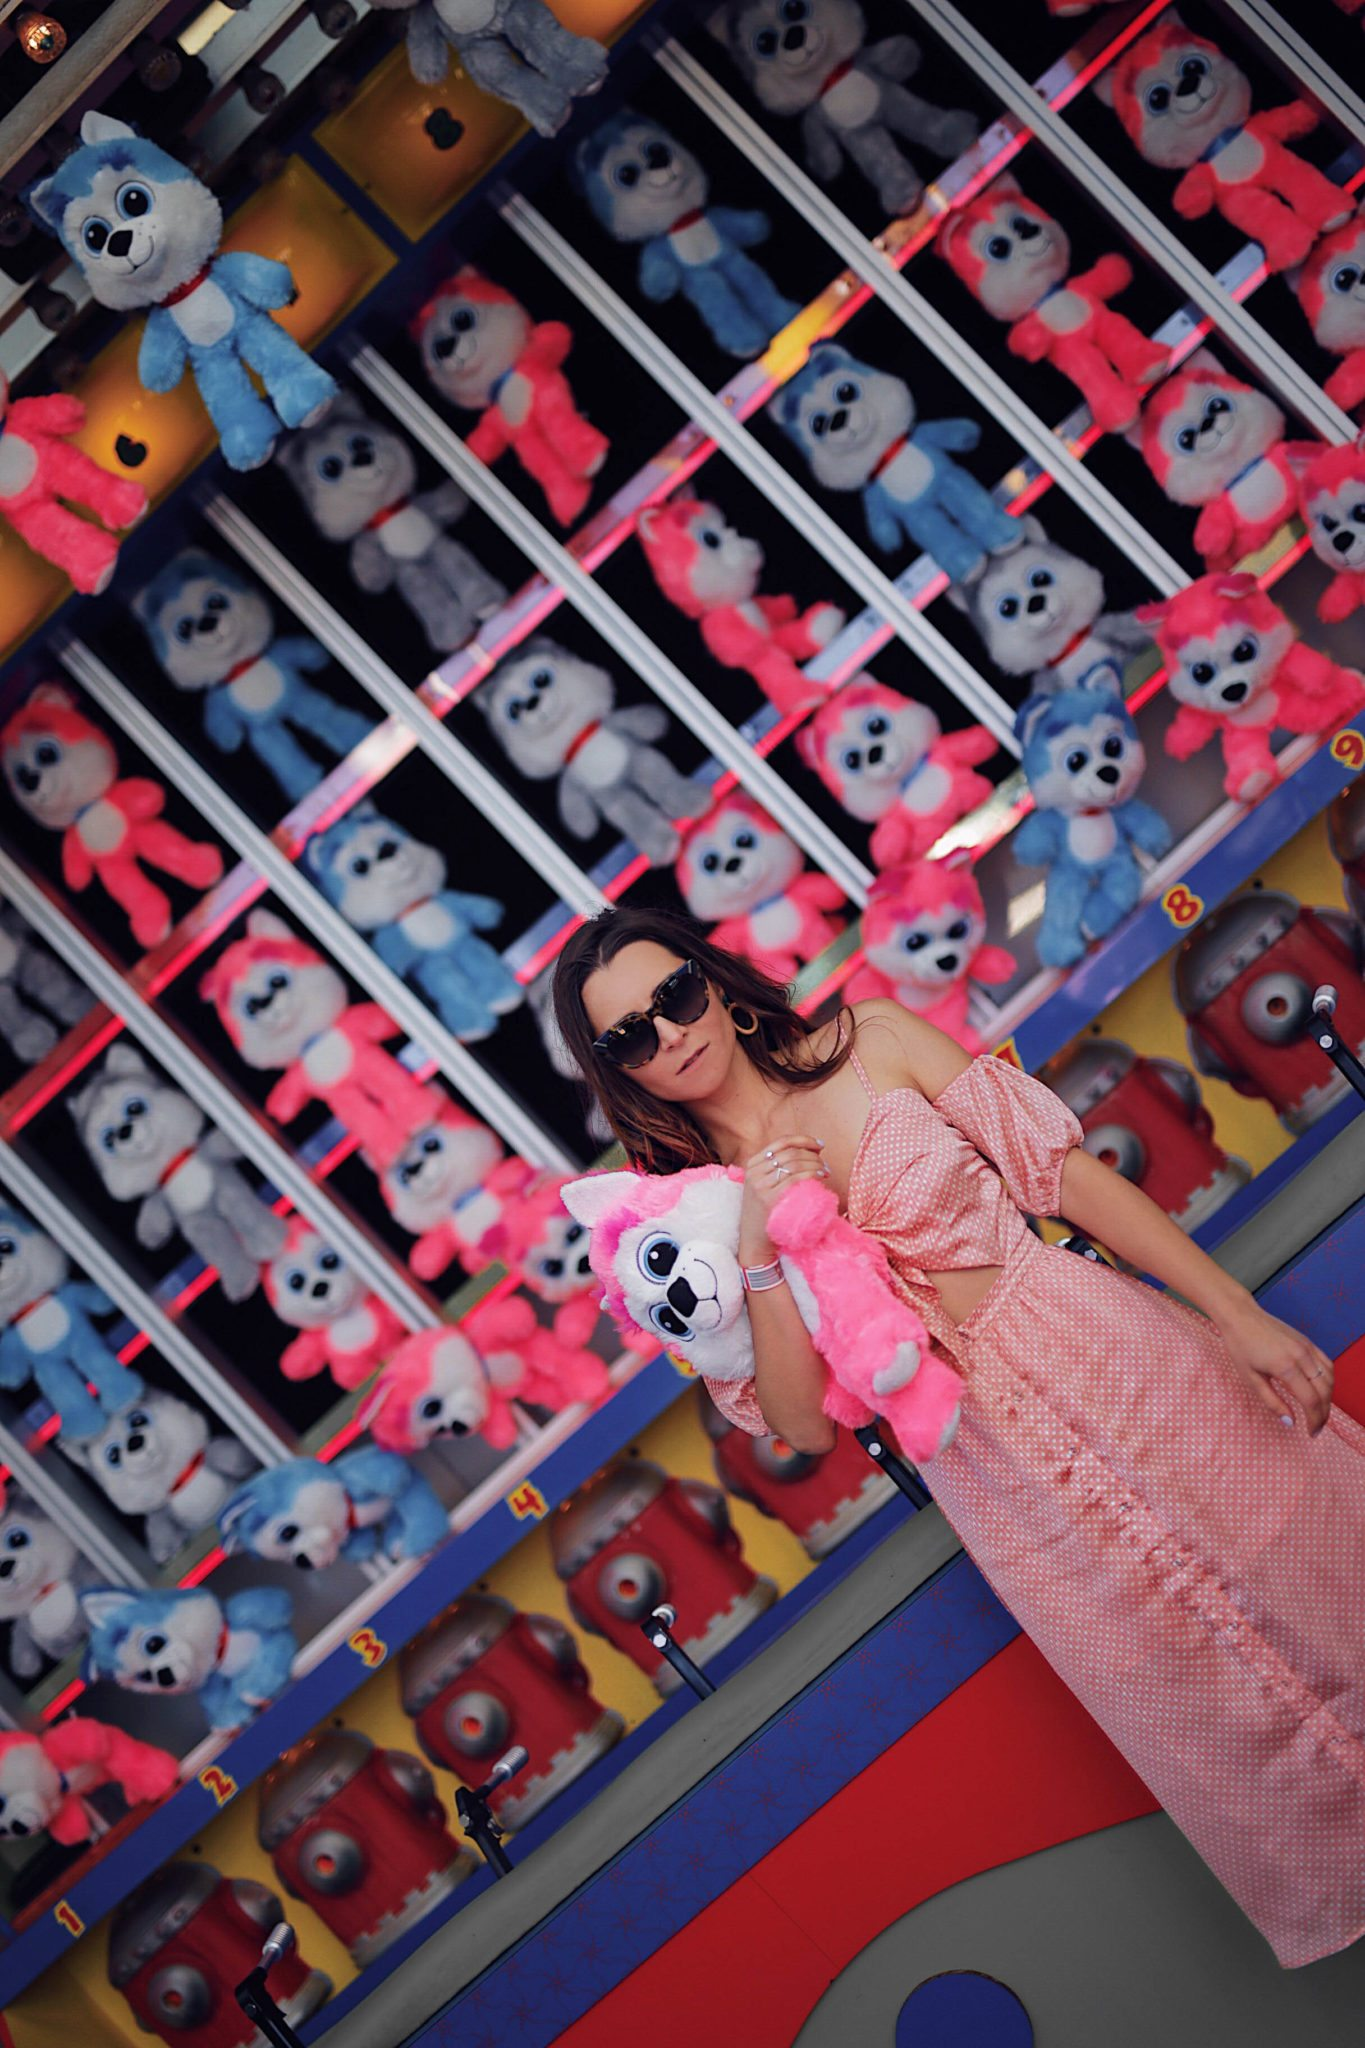 Fashion Diaries: Revolve Around The World Parties in Los Angeles - Tularosa Arlene Polka Dots dress worn by Fashion Blogger Julia Comil. More on Houseofcomil.com. Pin to read it later. Location Revolve Carnival at Santa Monica Pier